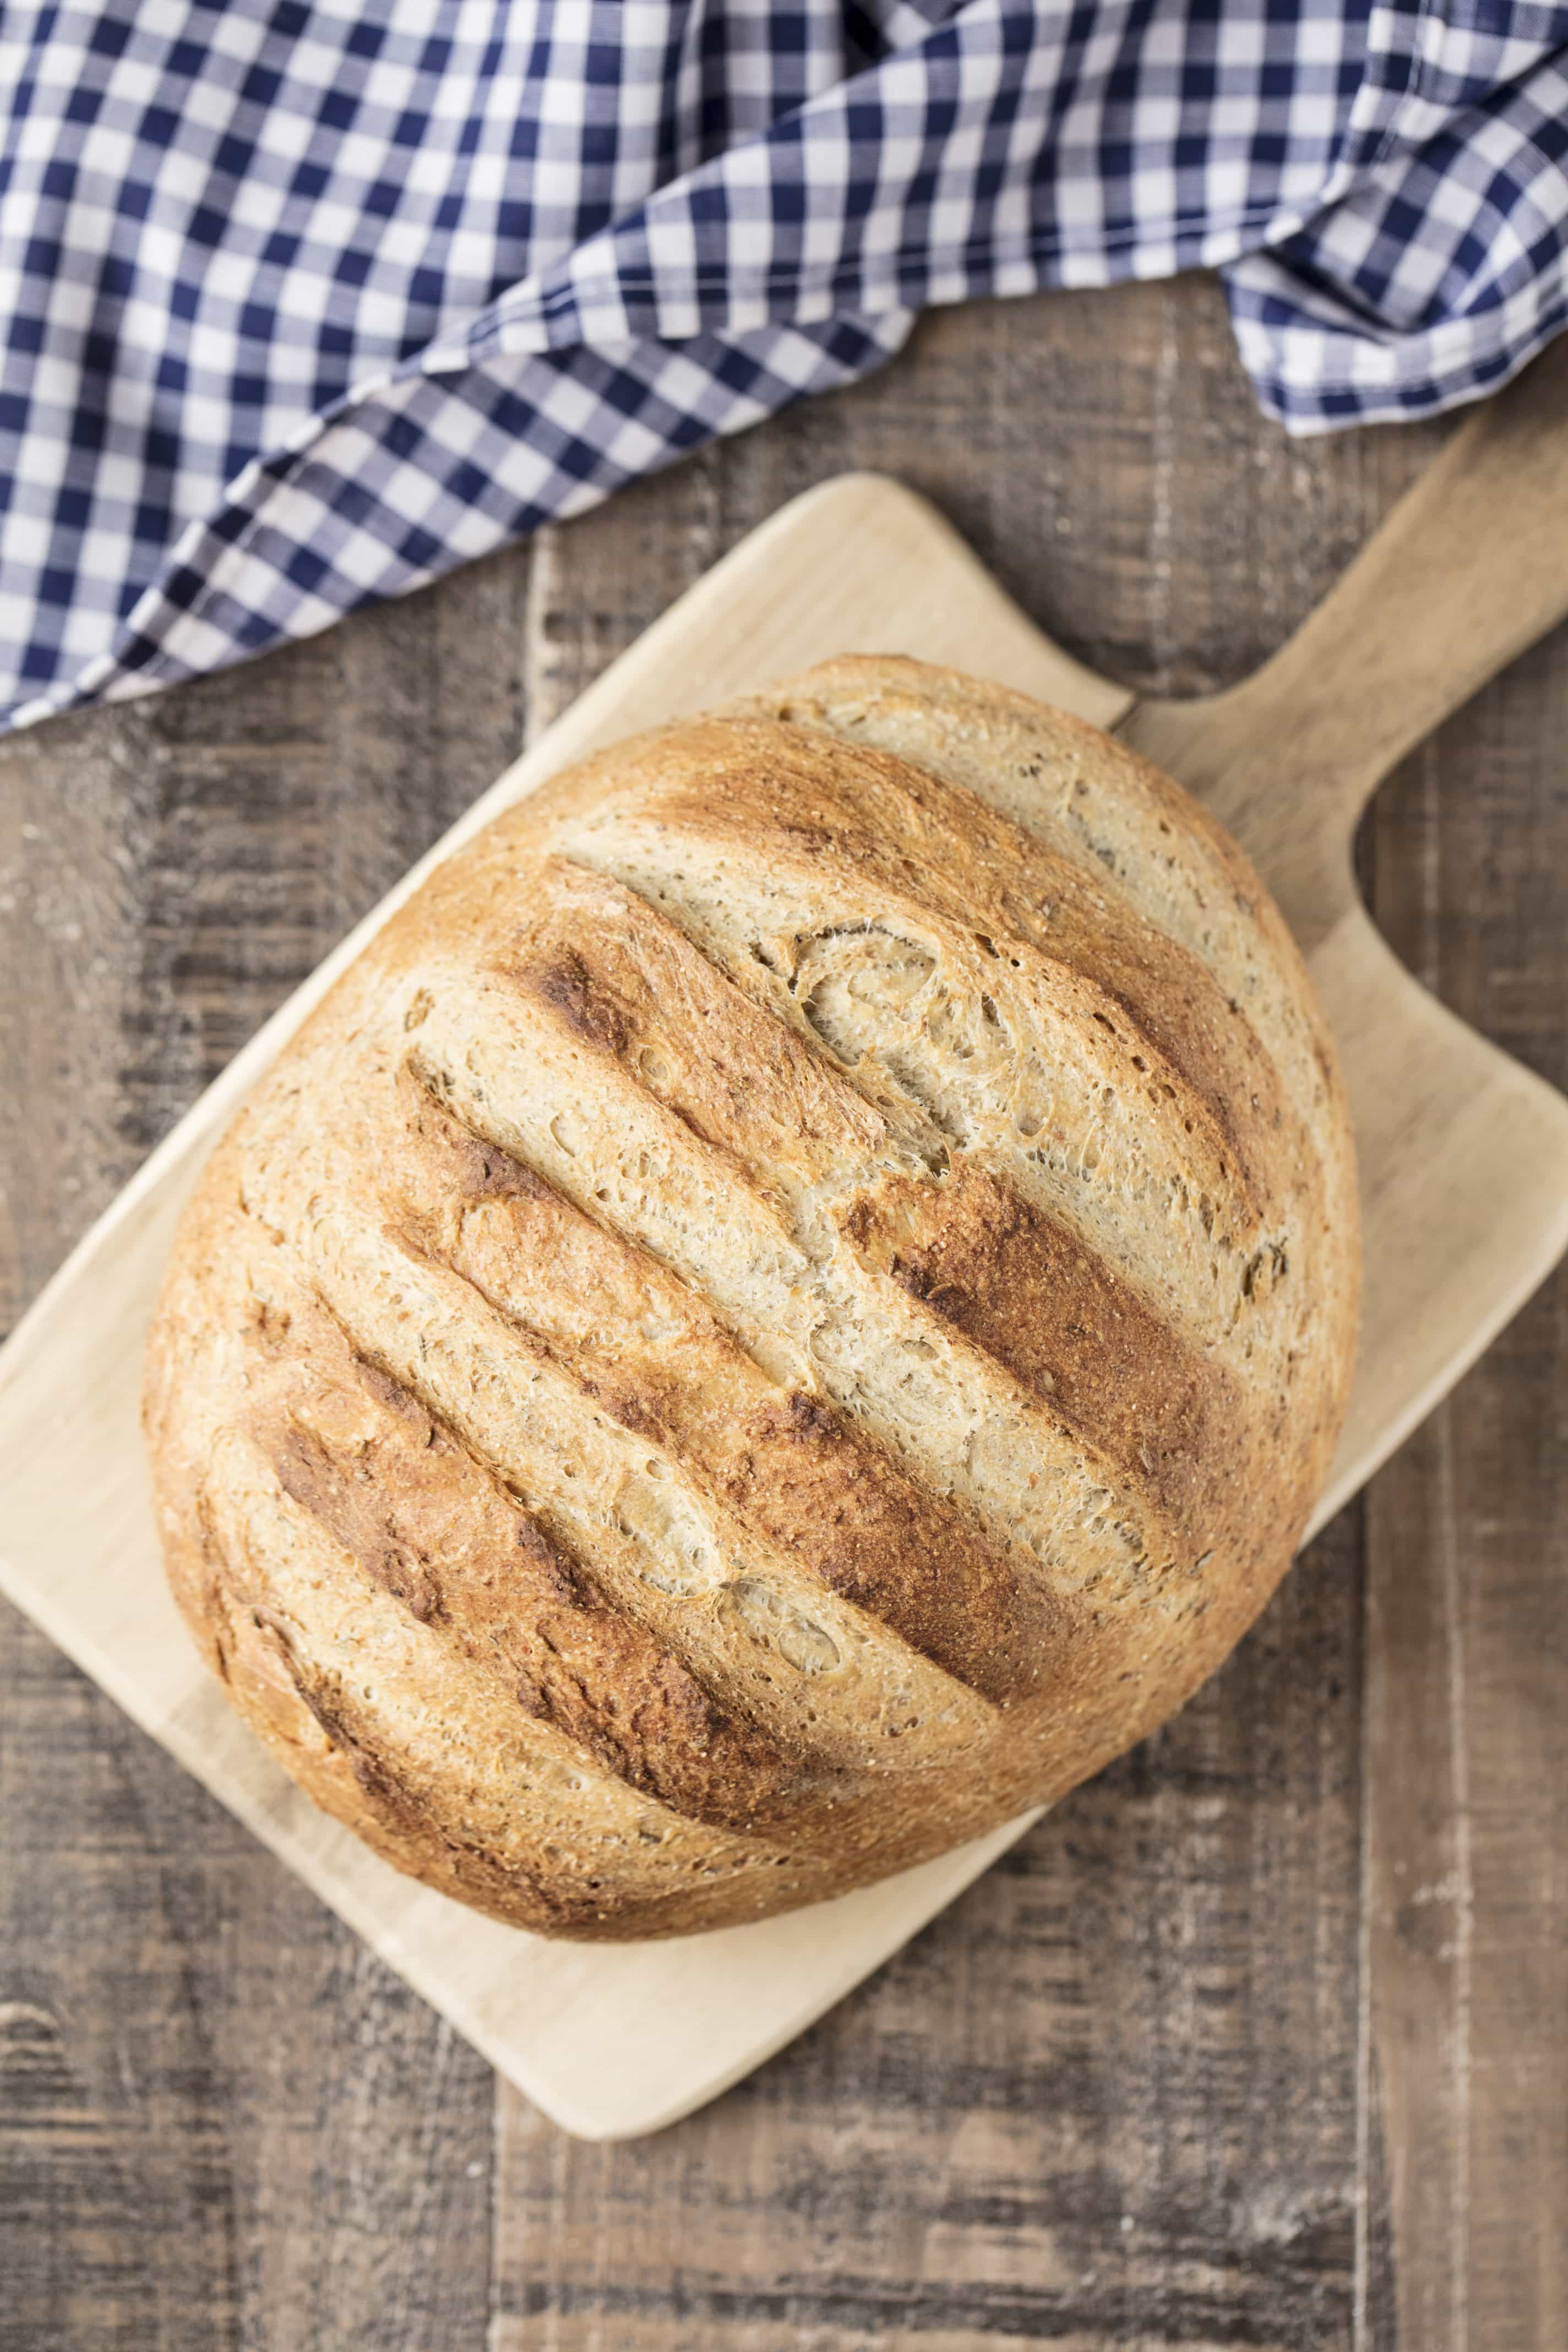 Delicious Homemade Rye Bread doesn't get much simpler than this bakery style artisan bread. Caraway and rye flour gives the bread its distinct flavor. And guess what? No machines required! You can make this bread by hand!